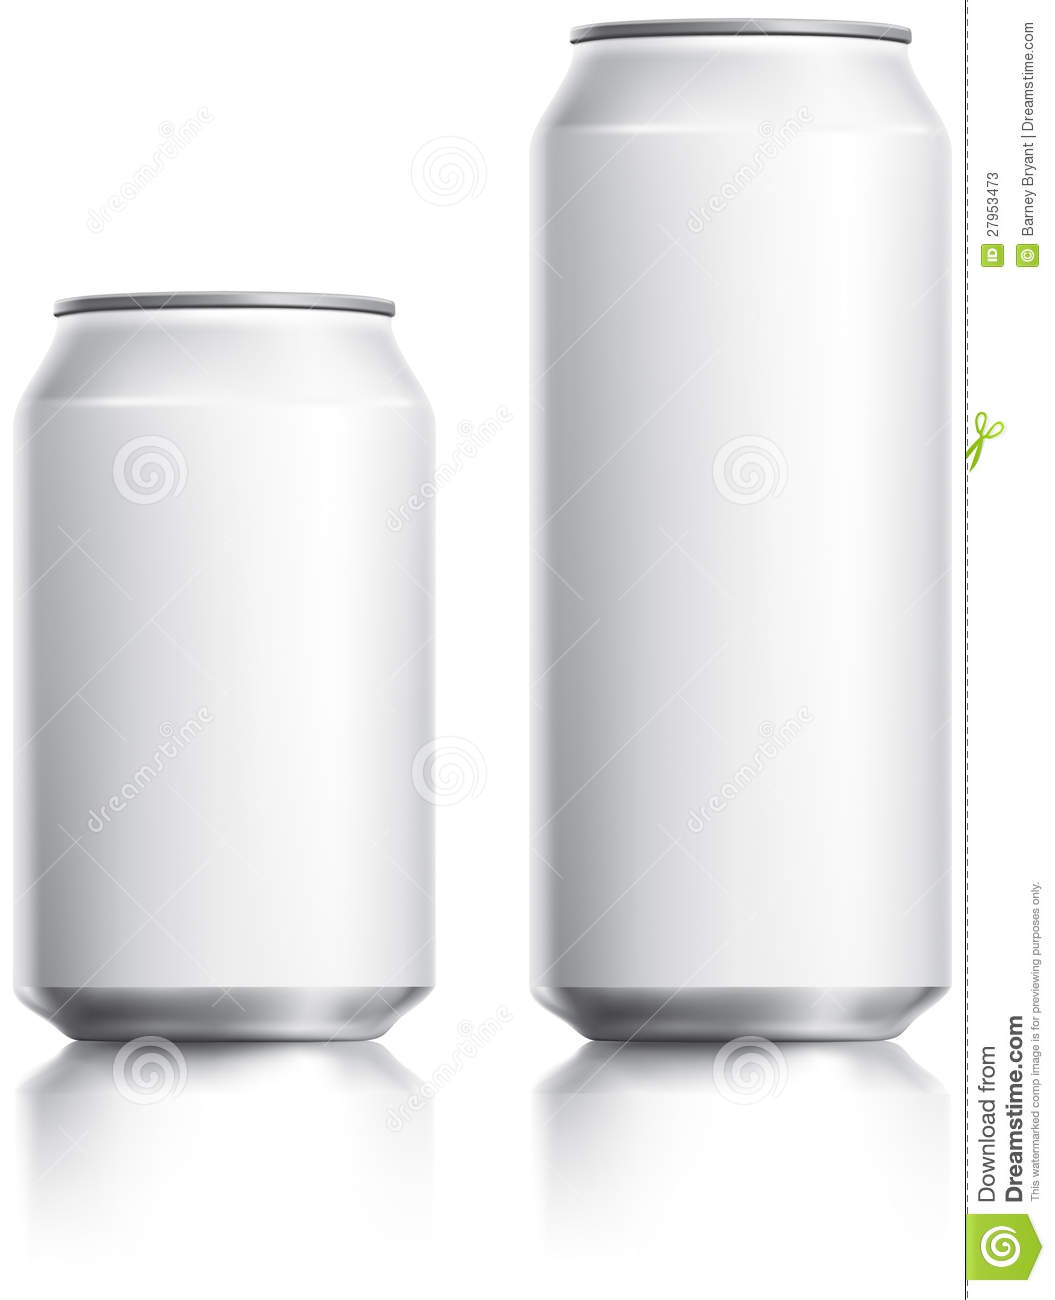 White Drinks Can Visual Stock Image Image Of Grey Plain